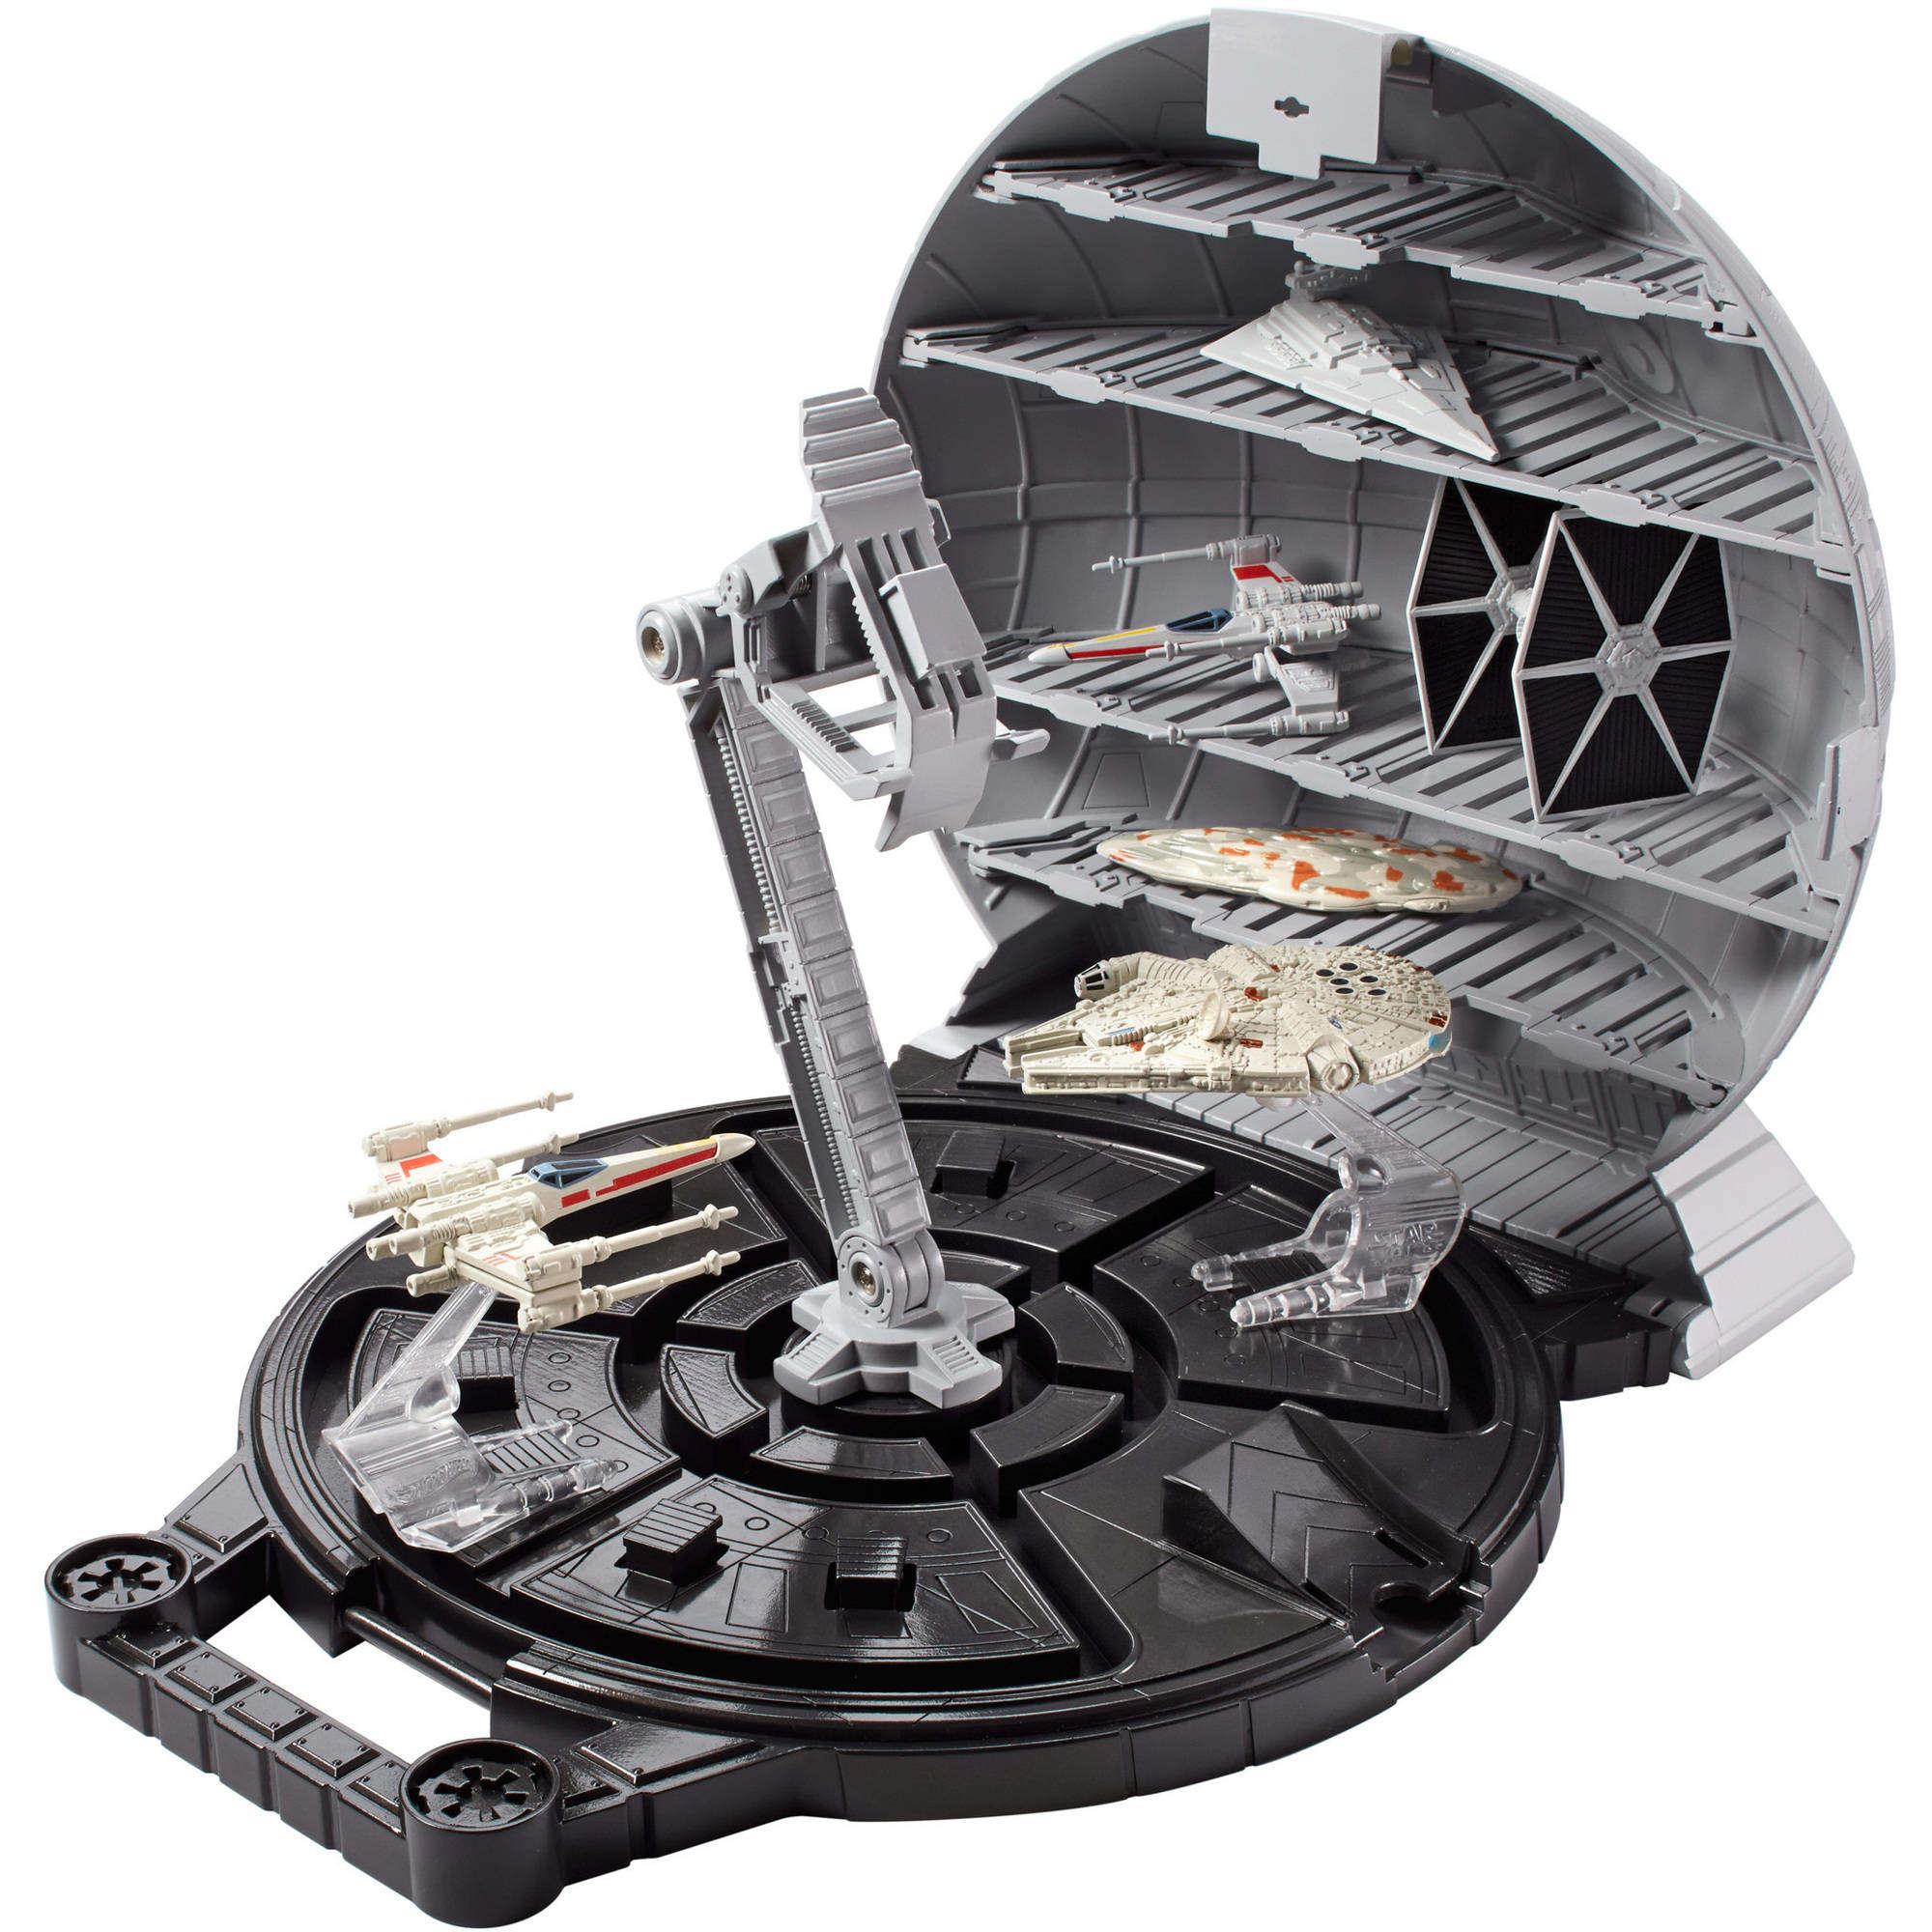 Hot Wheels Star Wars Death Star Space Station Play Case